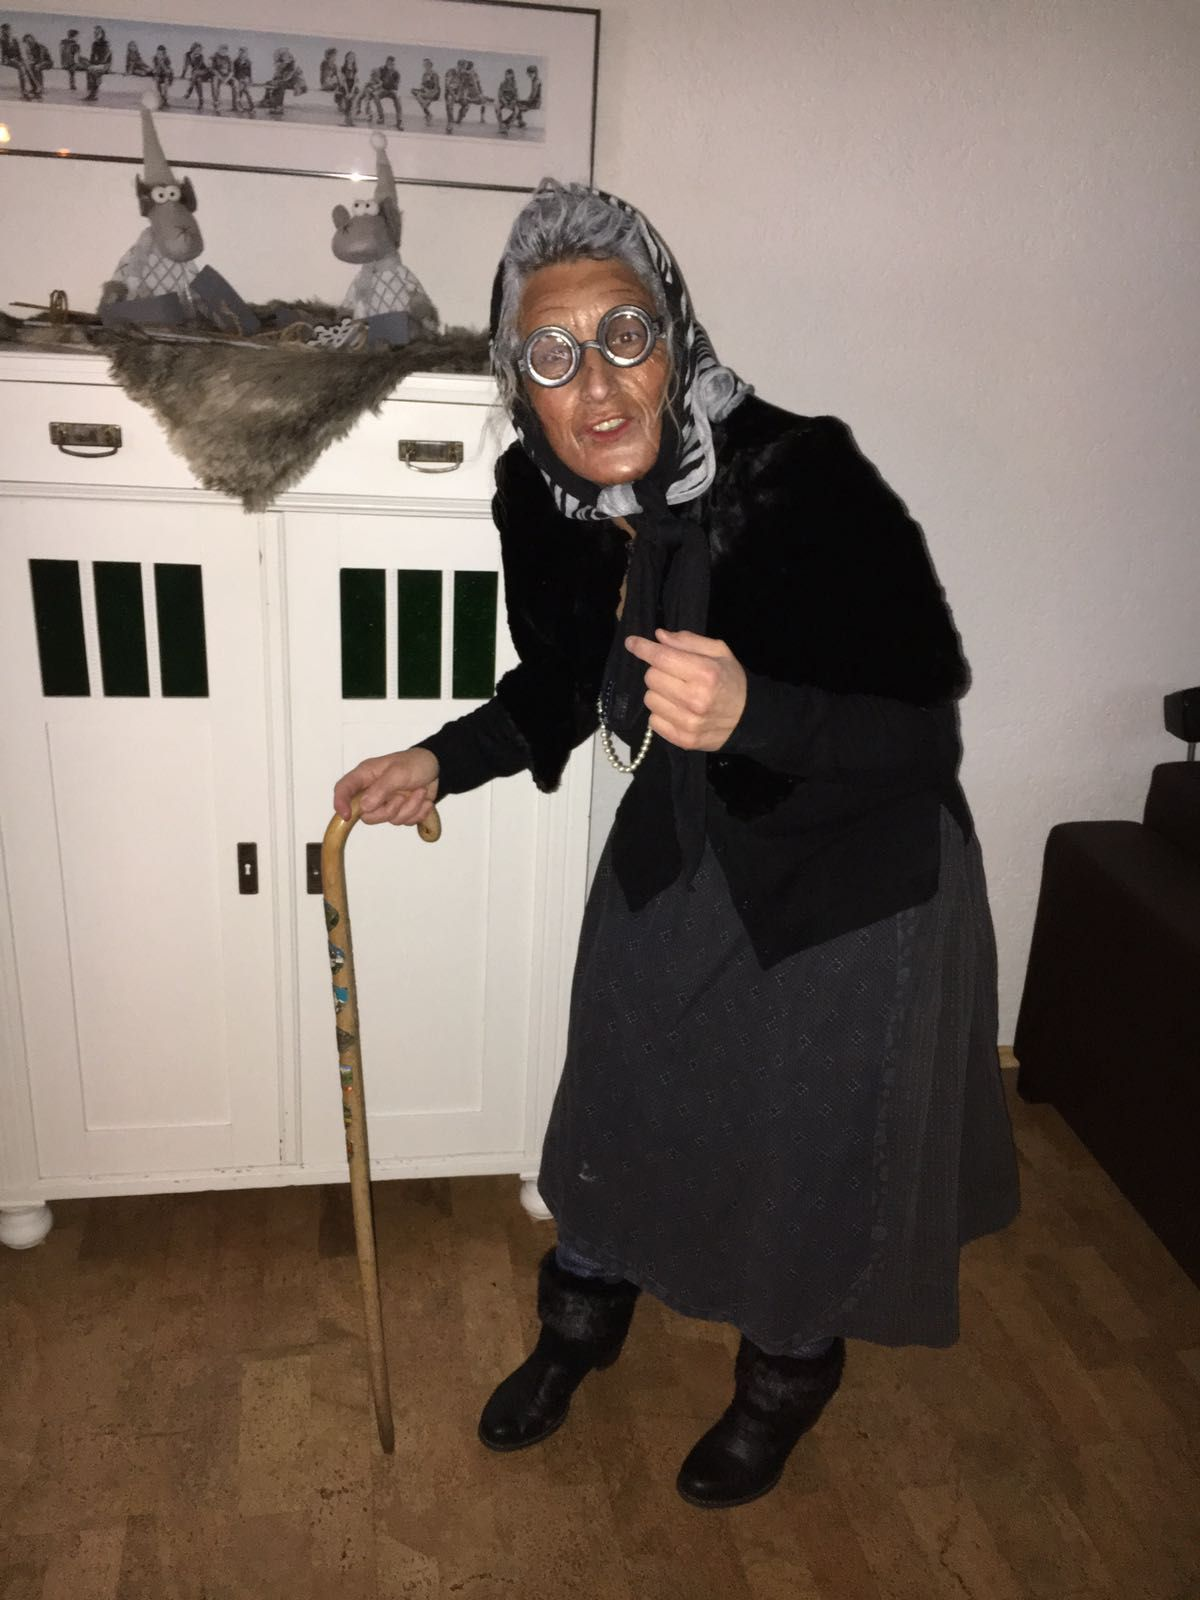 Kostüm Originell Oma Kostm Selber Machen Dress Up T Halloween